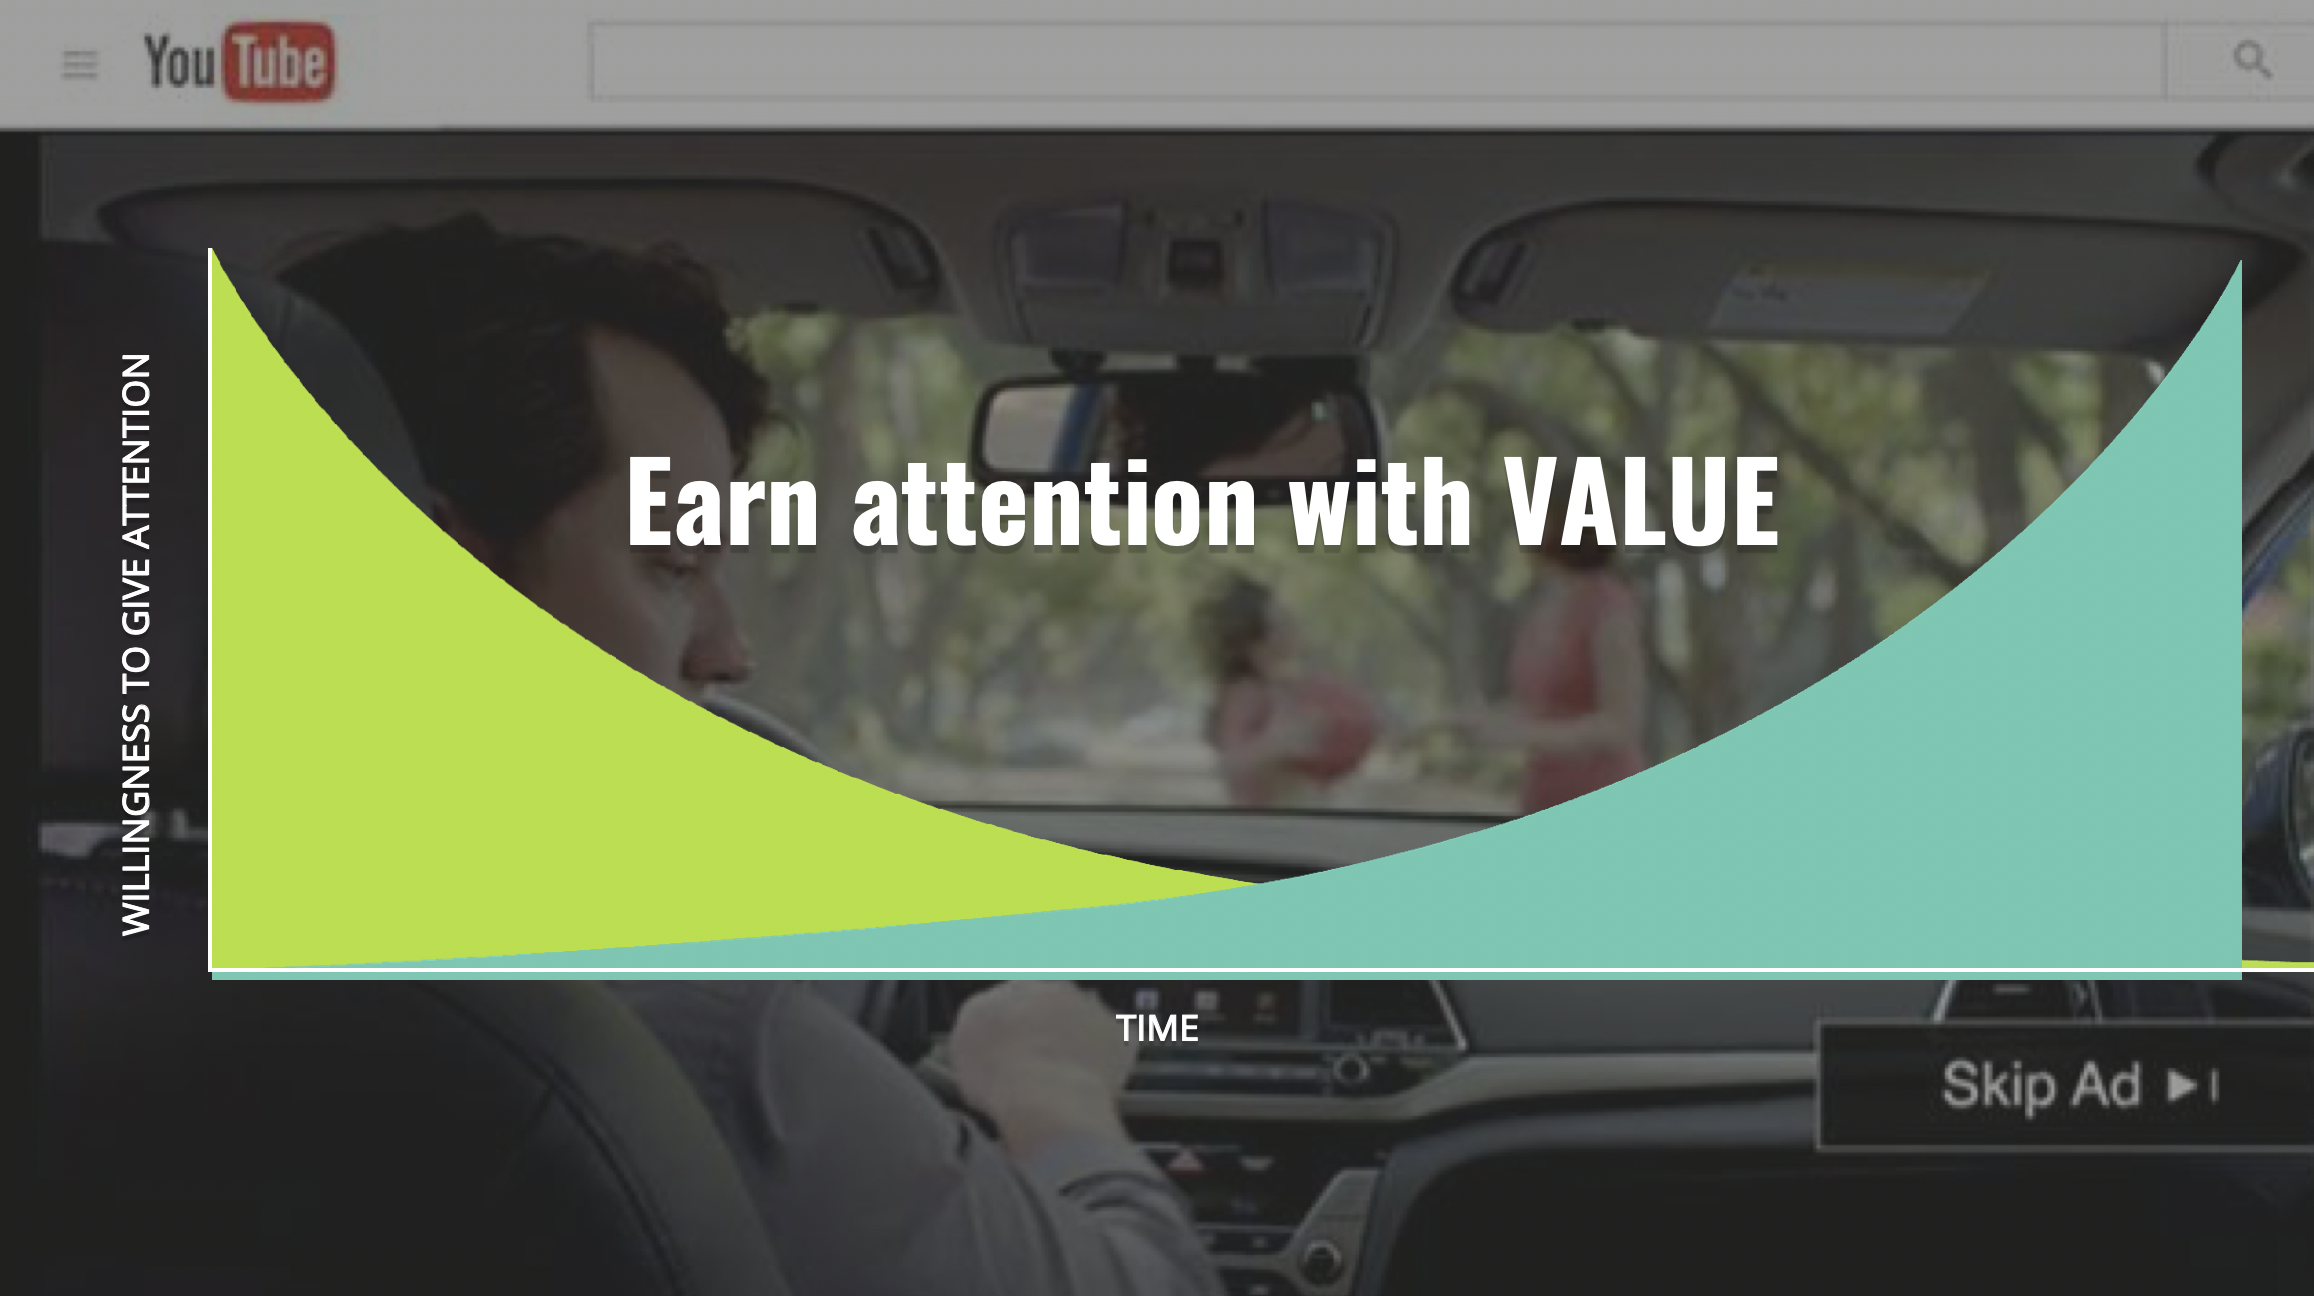 Earn attention with value.